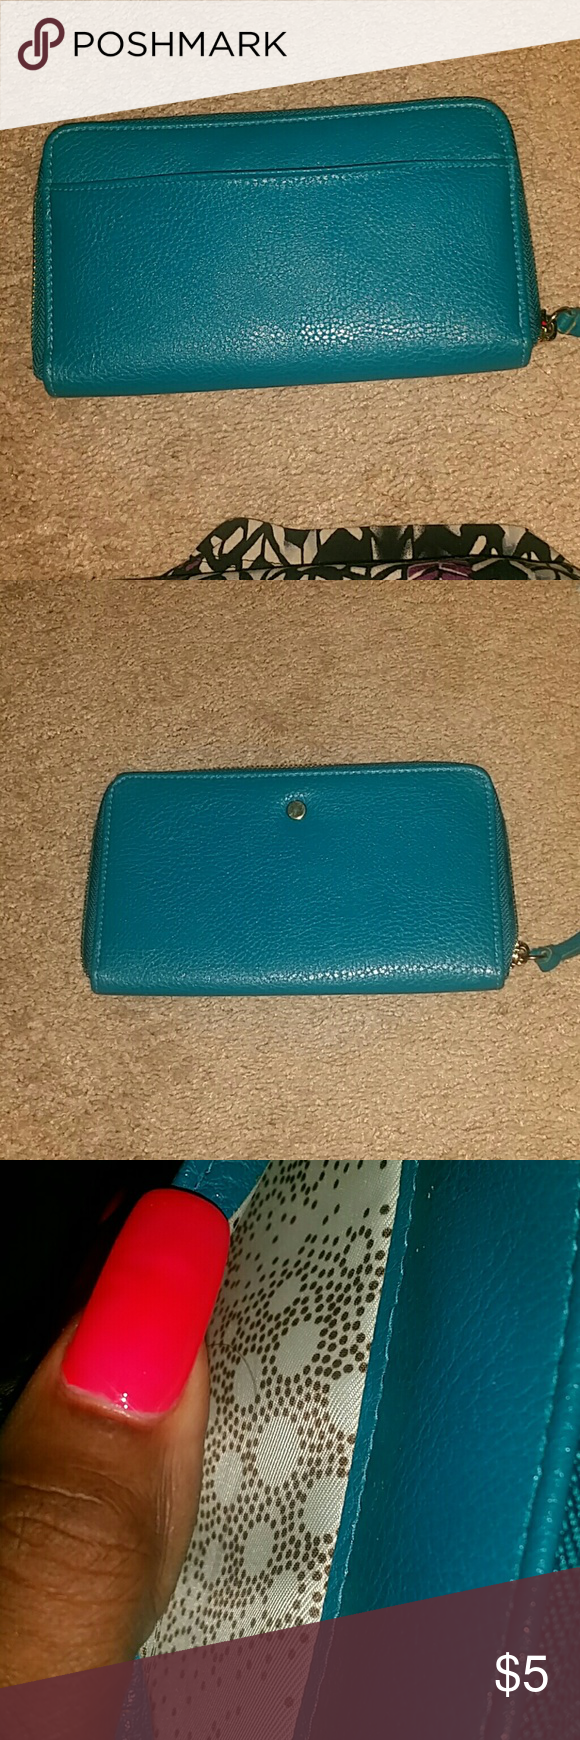 Ladies Wallet Clean inside and out  Holds credit cards or etc other Bags Wallets